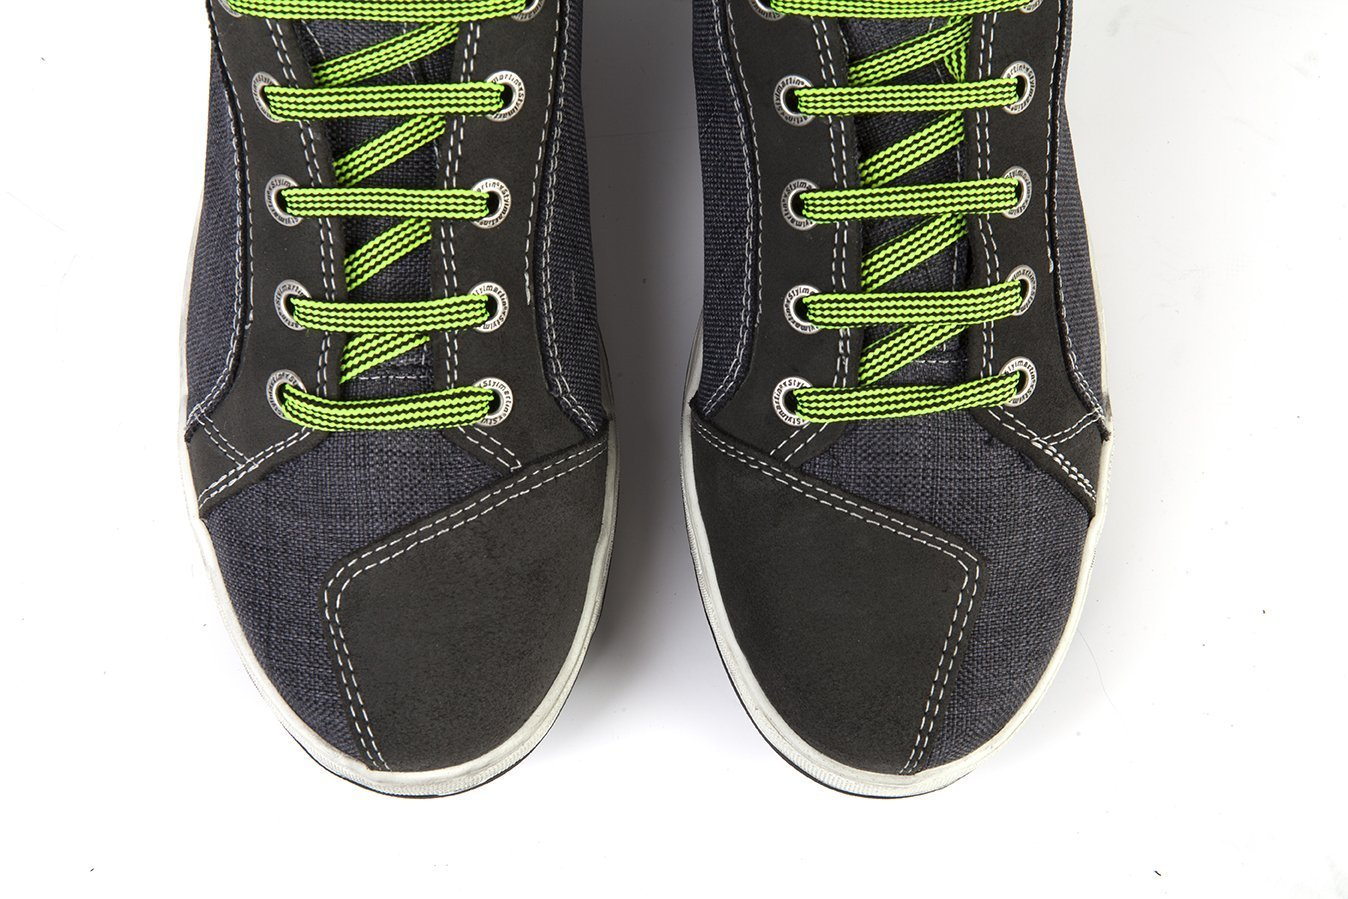 Stylmartin - Stylmartin Kansas WP Sneaker in Anthracite - Boots - Salt Flats Clothing